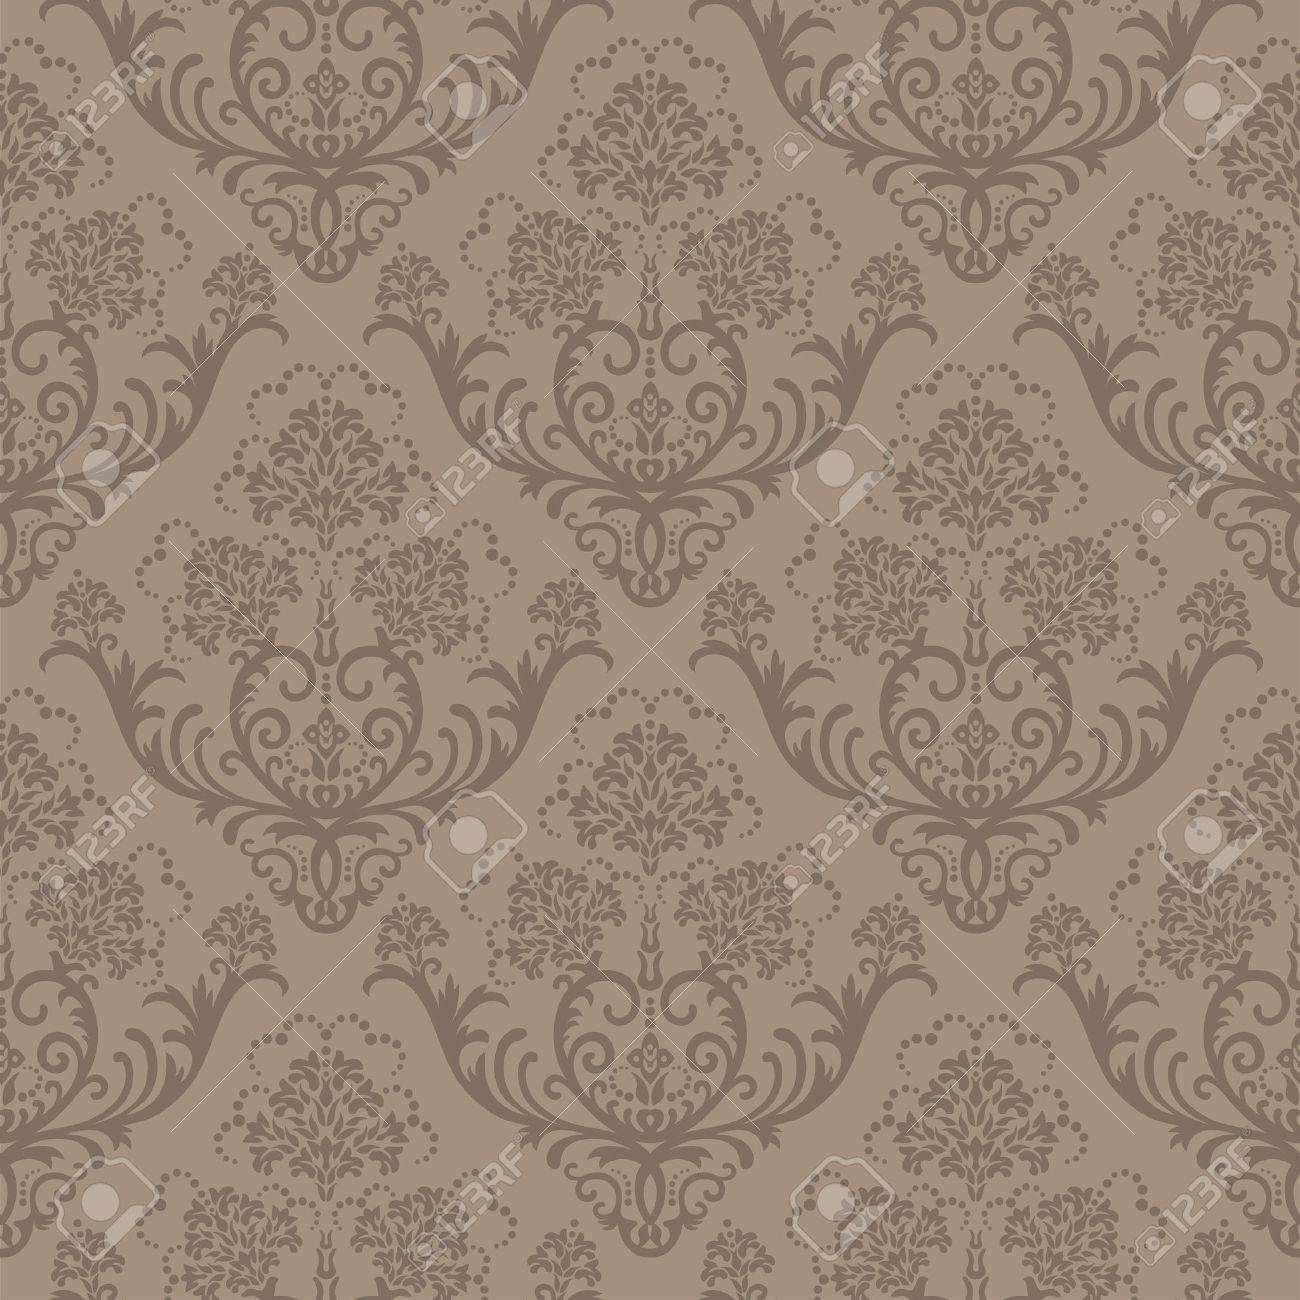 Seamless Brown Floral Damask Wallpaper Royalty Free Cliparts